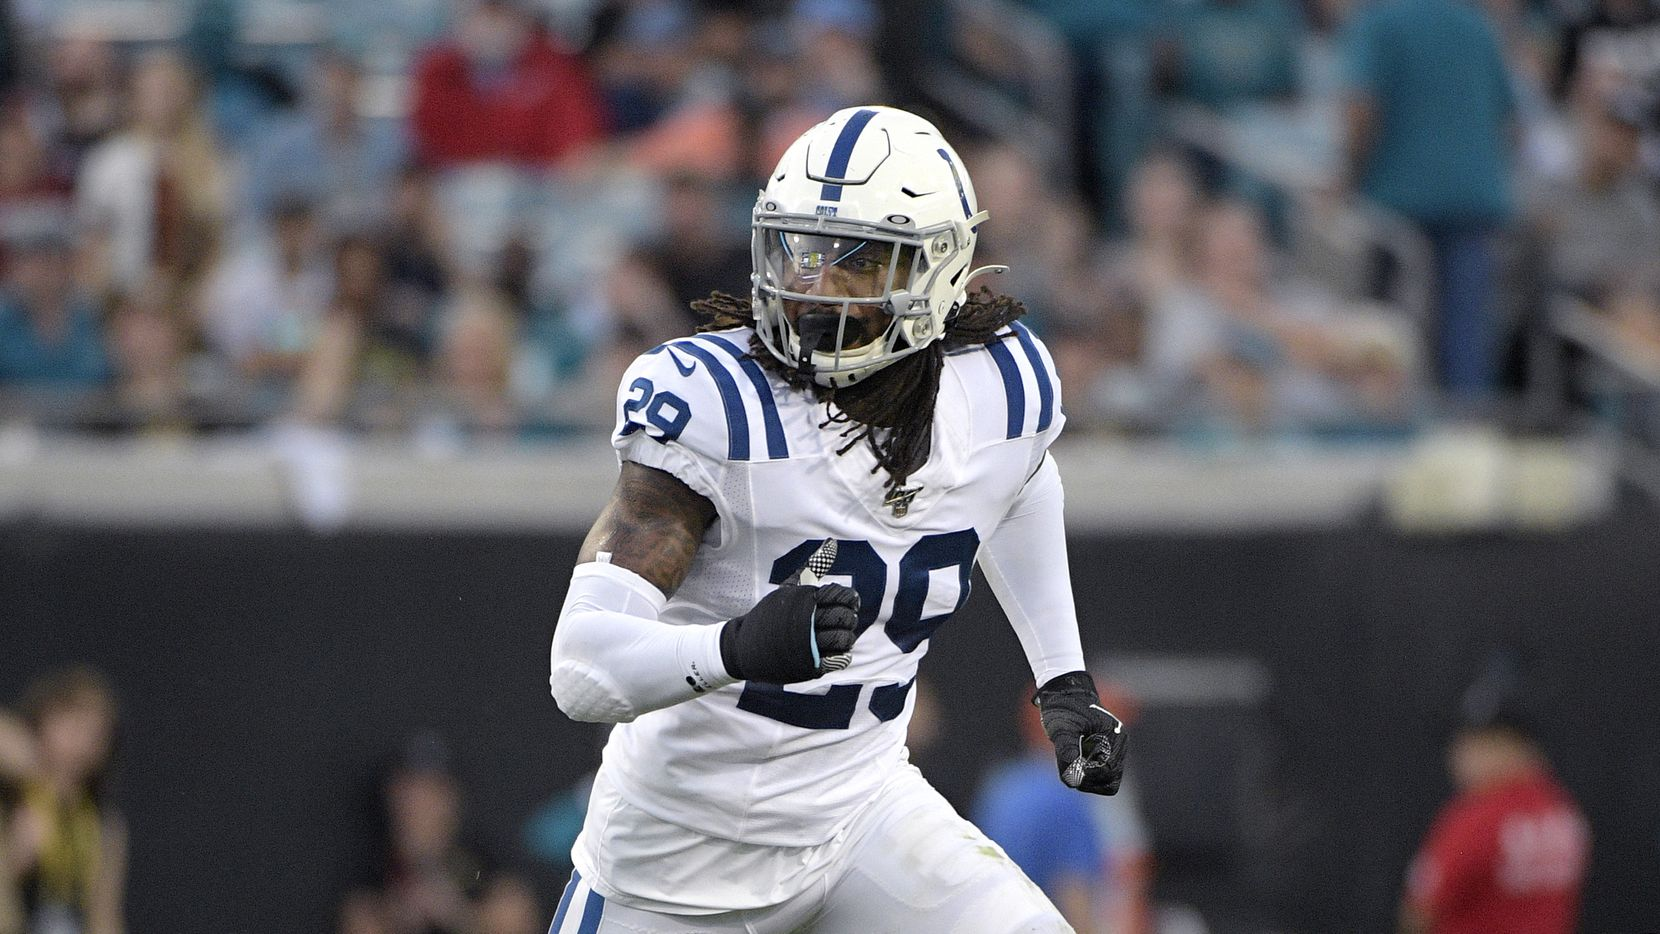 Indianapolis Colts safety Malik Hooker (29) follows a play during the first half of an NFL football game against the Jacksonville Jaguars Sunday, Dec. 29, 2019, in Jacksonville, Fla.